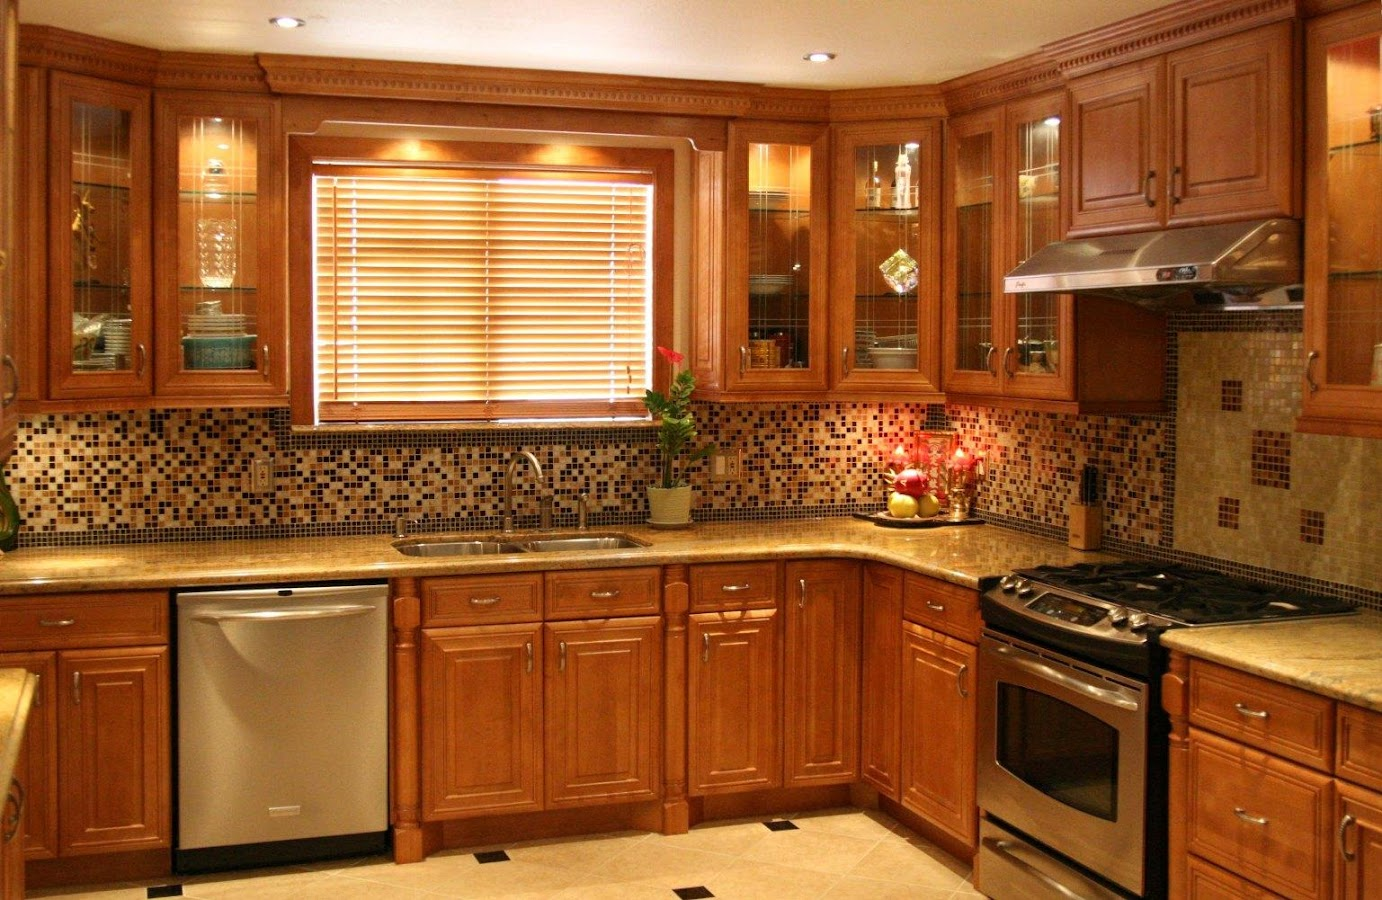 Kitchen Remodeling Designs Android Apps on Google Play